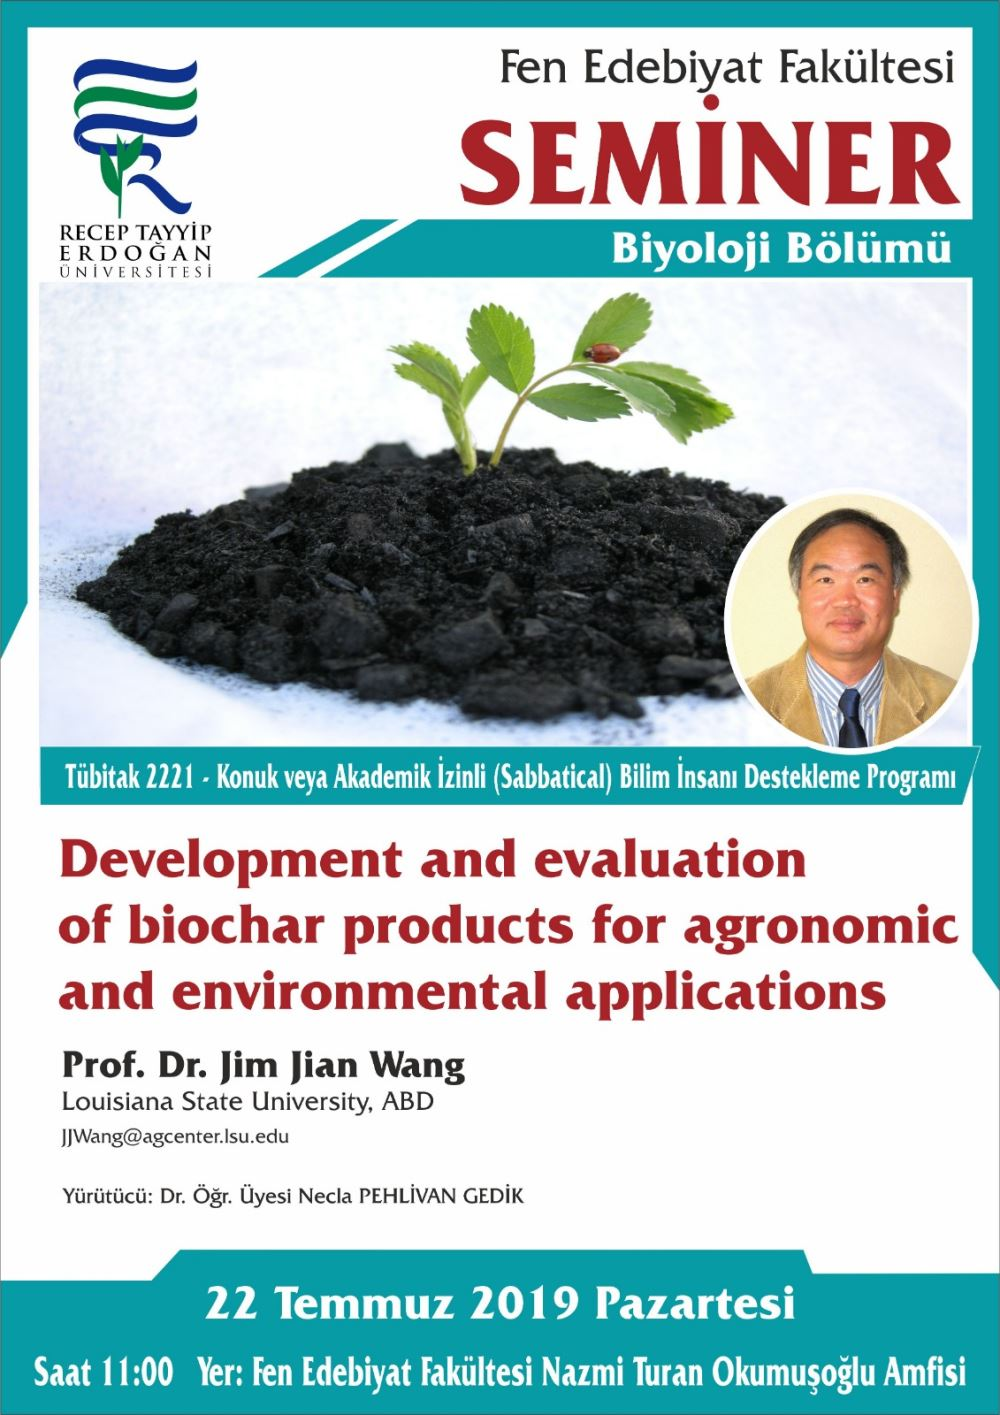 Development and evaluation of biochar products for agronomic and environmental applications